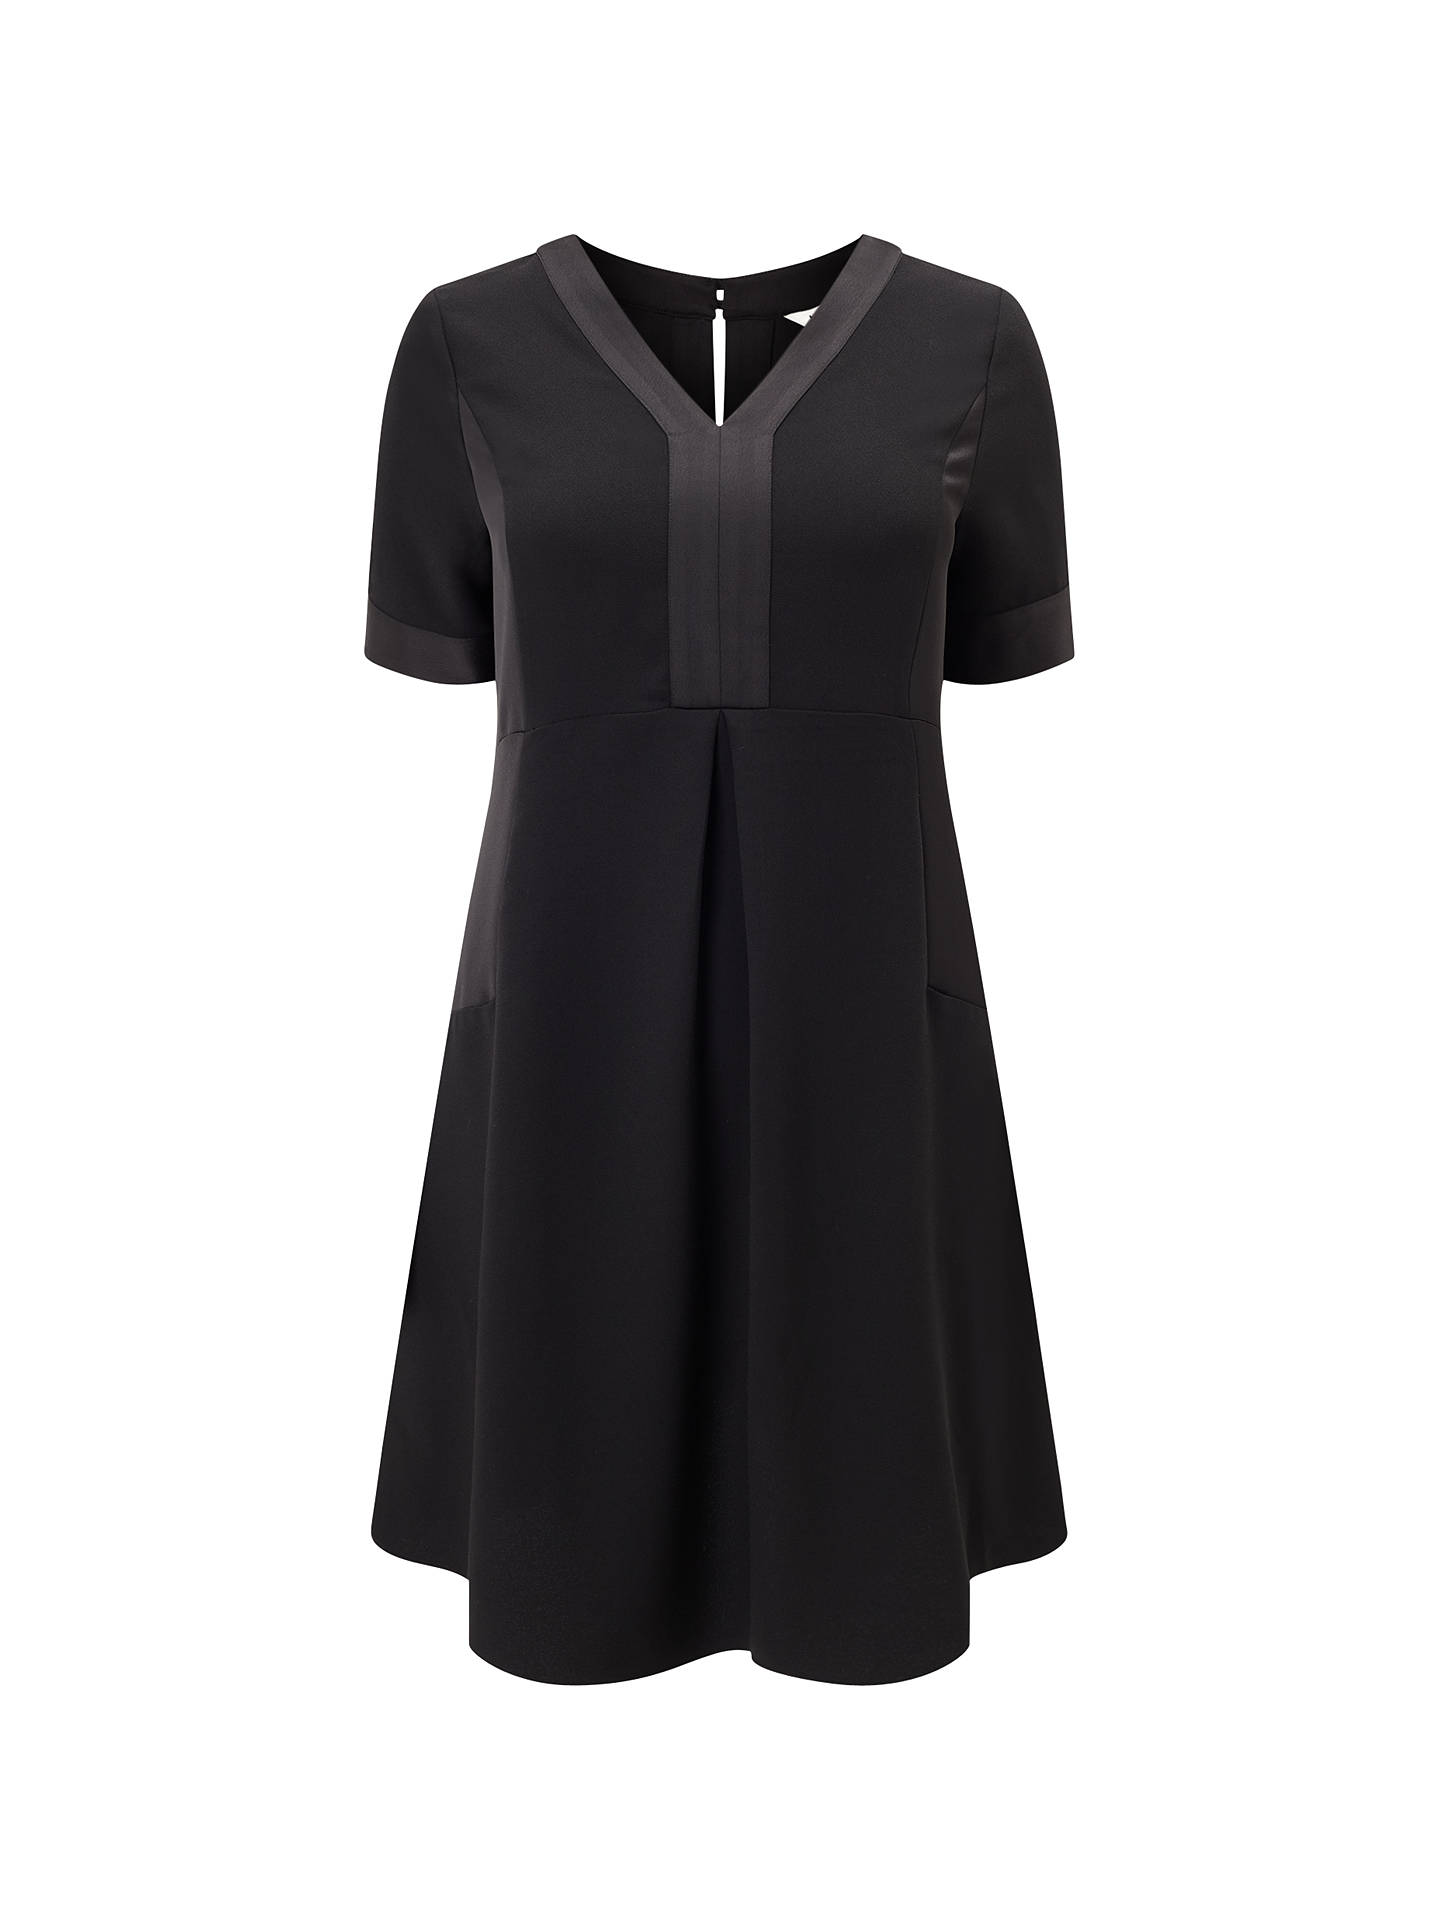 BuyStudio 8 Kelis Dress, Black, 12 Online at johnlewis.com